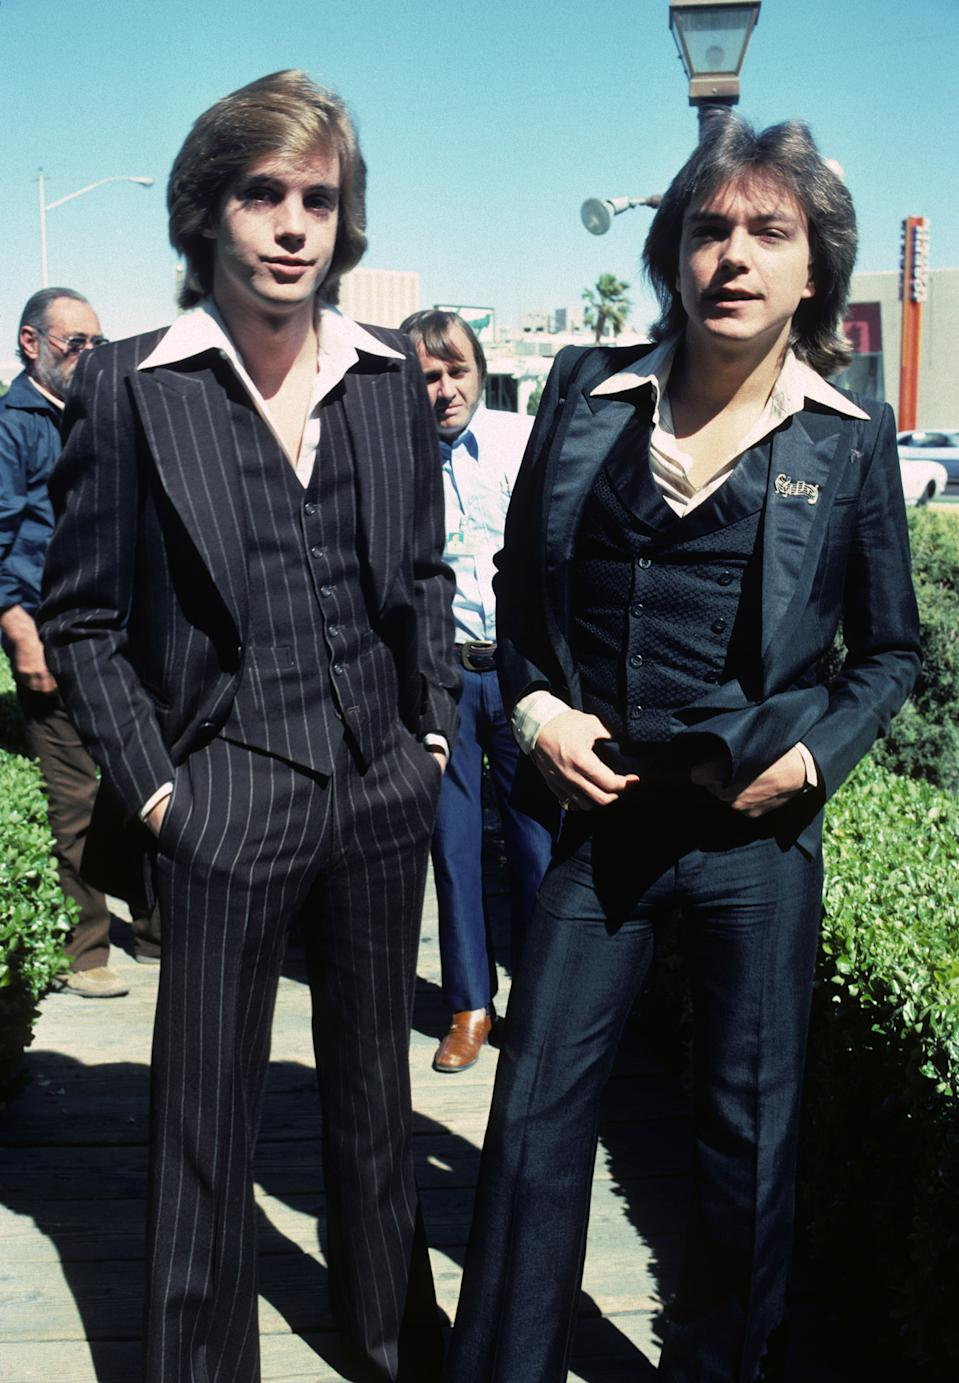 Shaun and David Cassidy in 1977. (Photo: Getty Images)